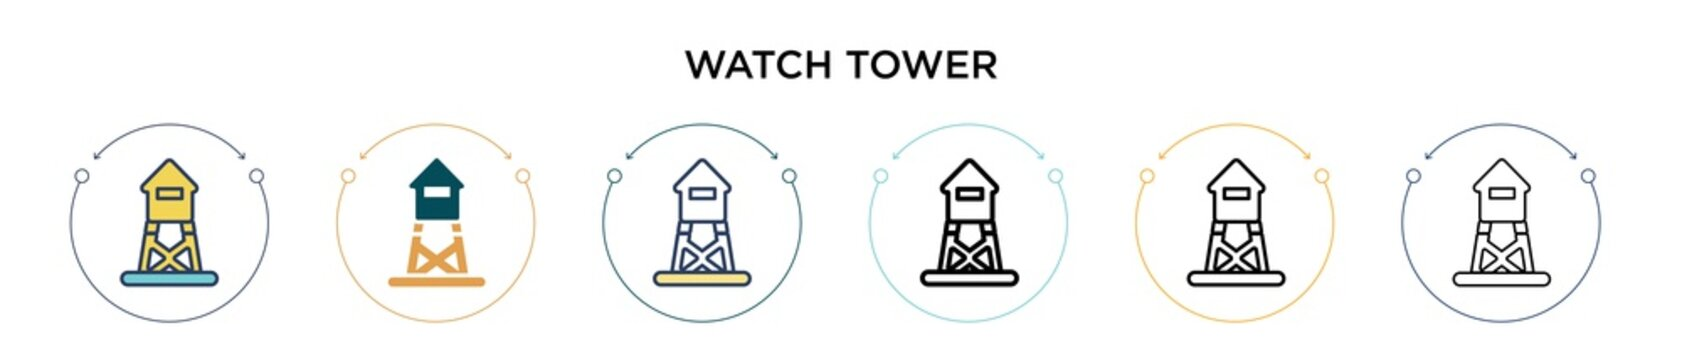 Watch tower icon in filled, thin line, outline and stroke style. Vector illustration of two colored and black watch tower vector icons designs can be used for mobile, ui, web